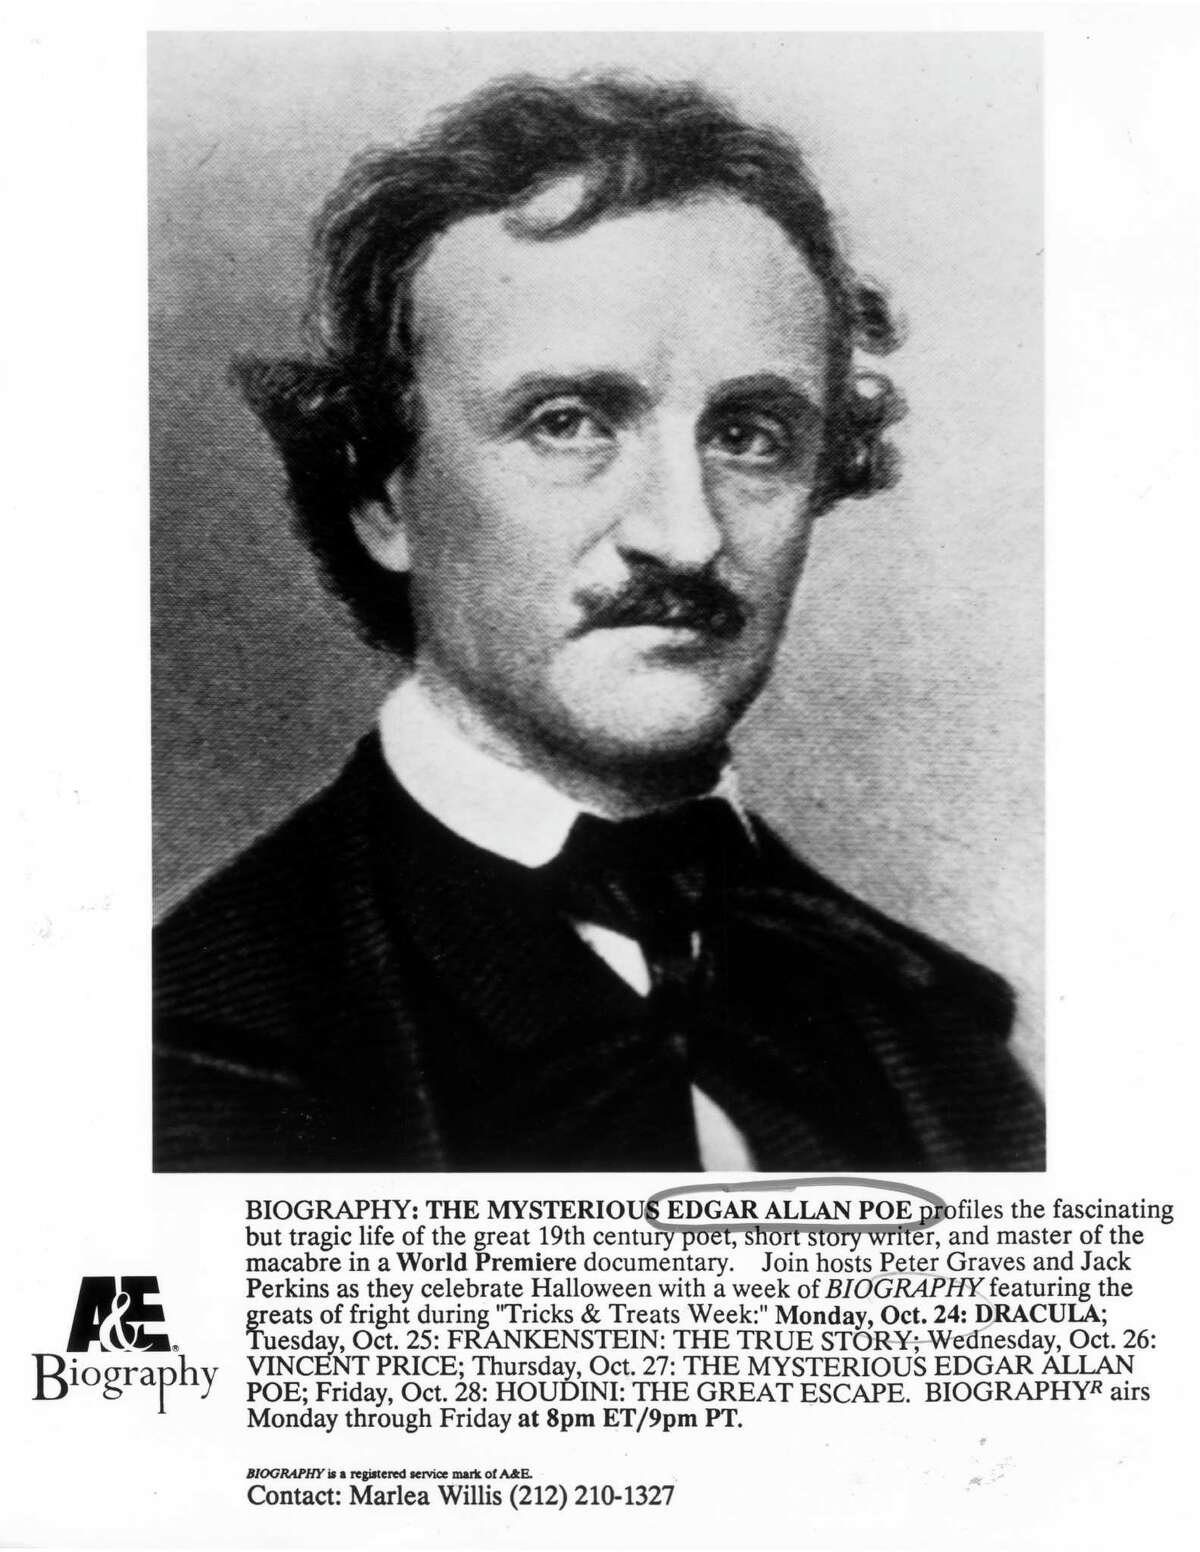 Benjamins Poe was the first American writer to make a living from writing.